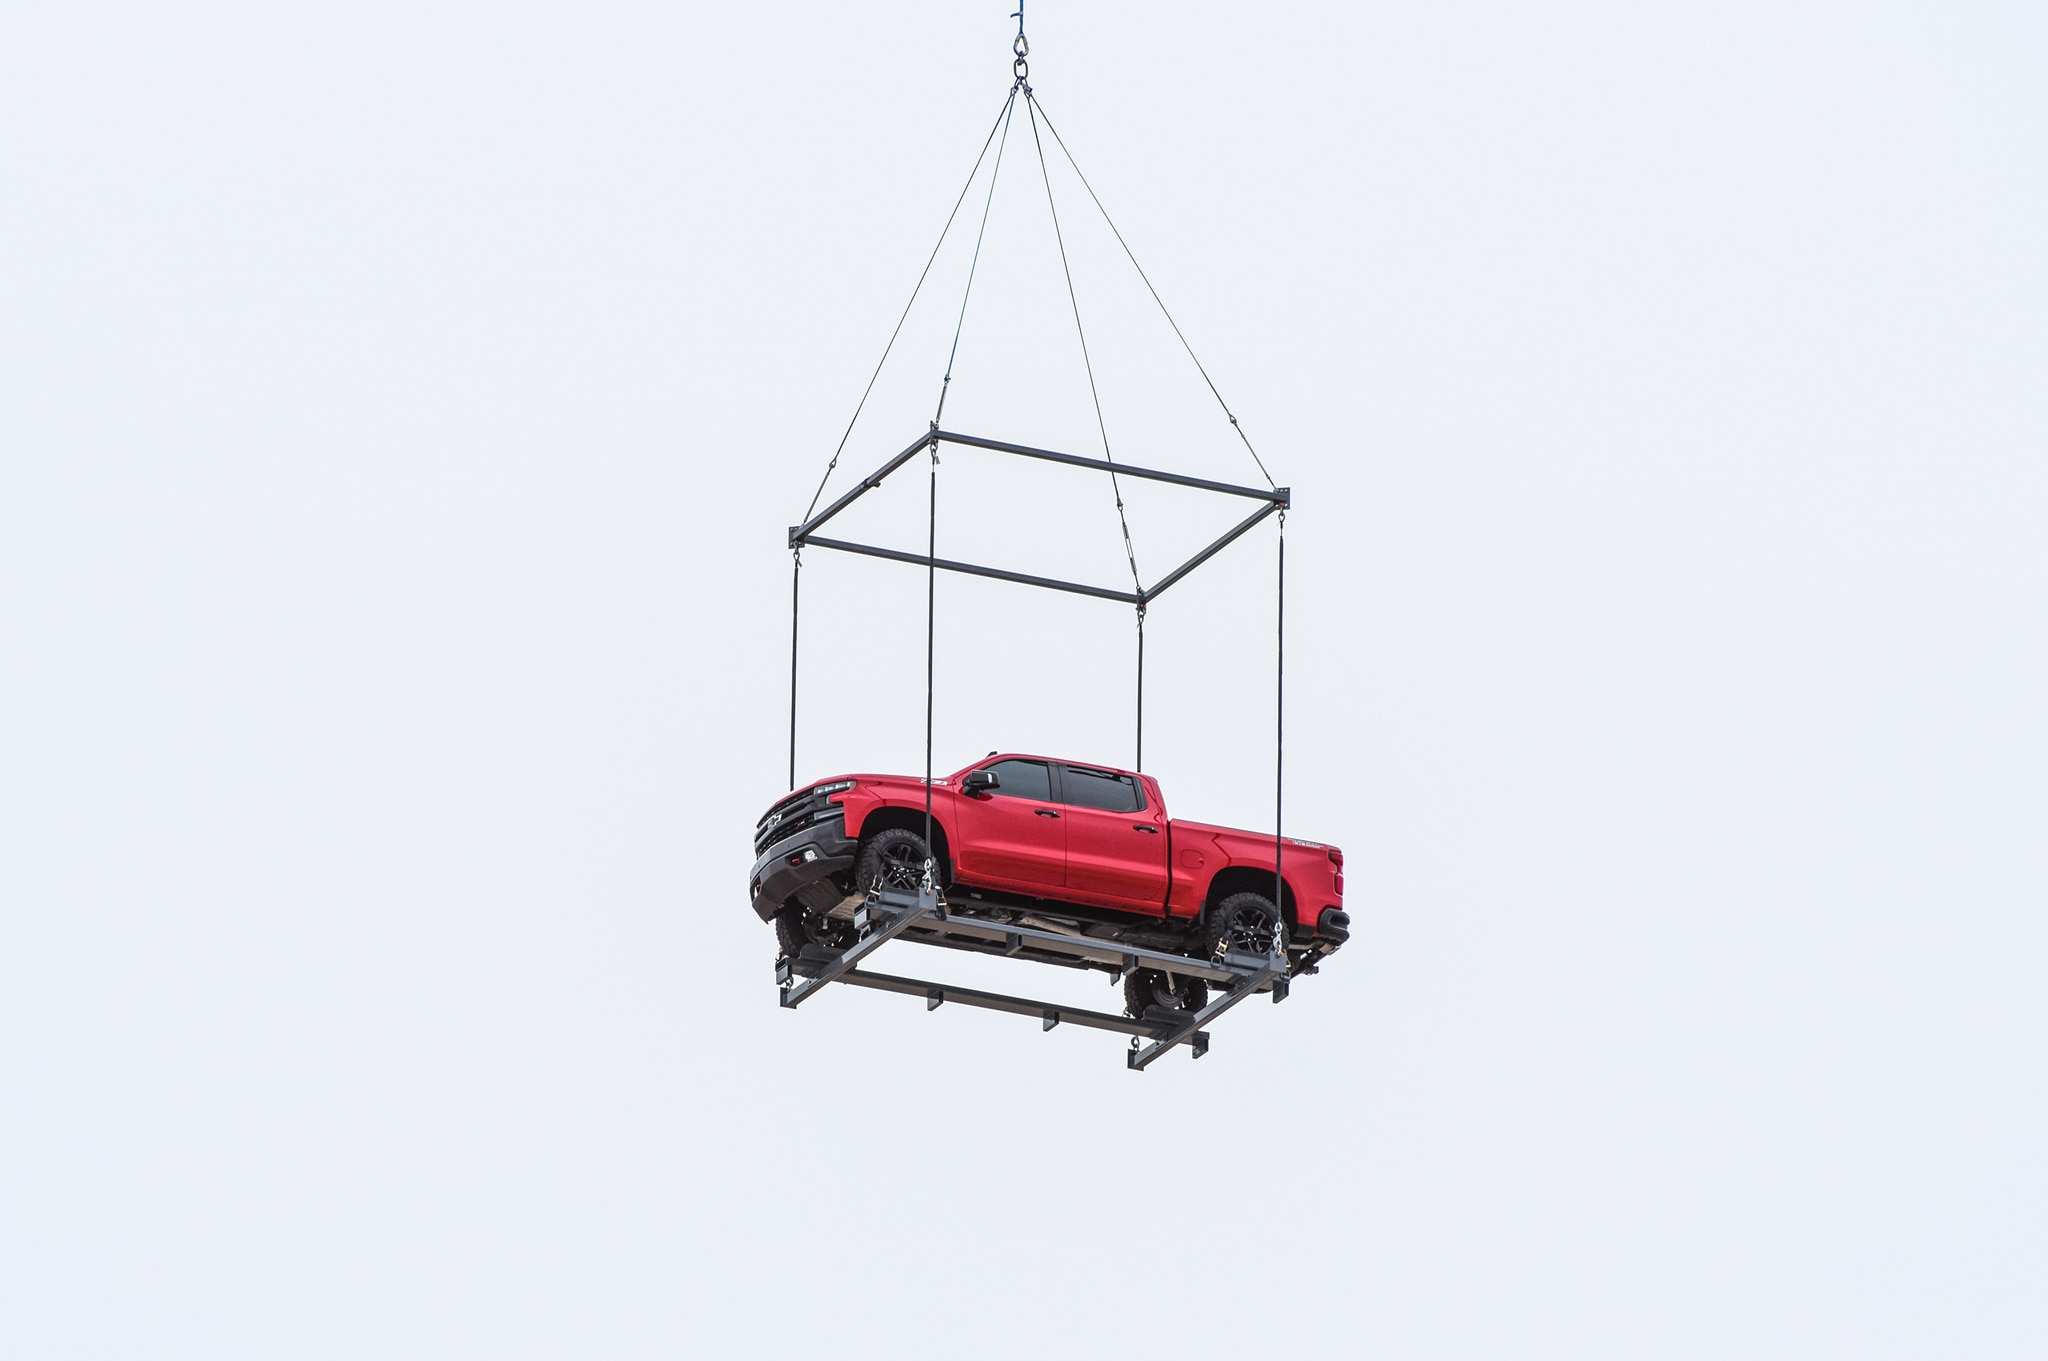 2019 chevrolet silverado 1500 z71 trailboss reveal in air